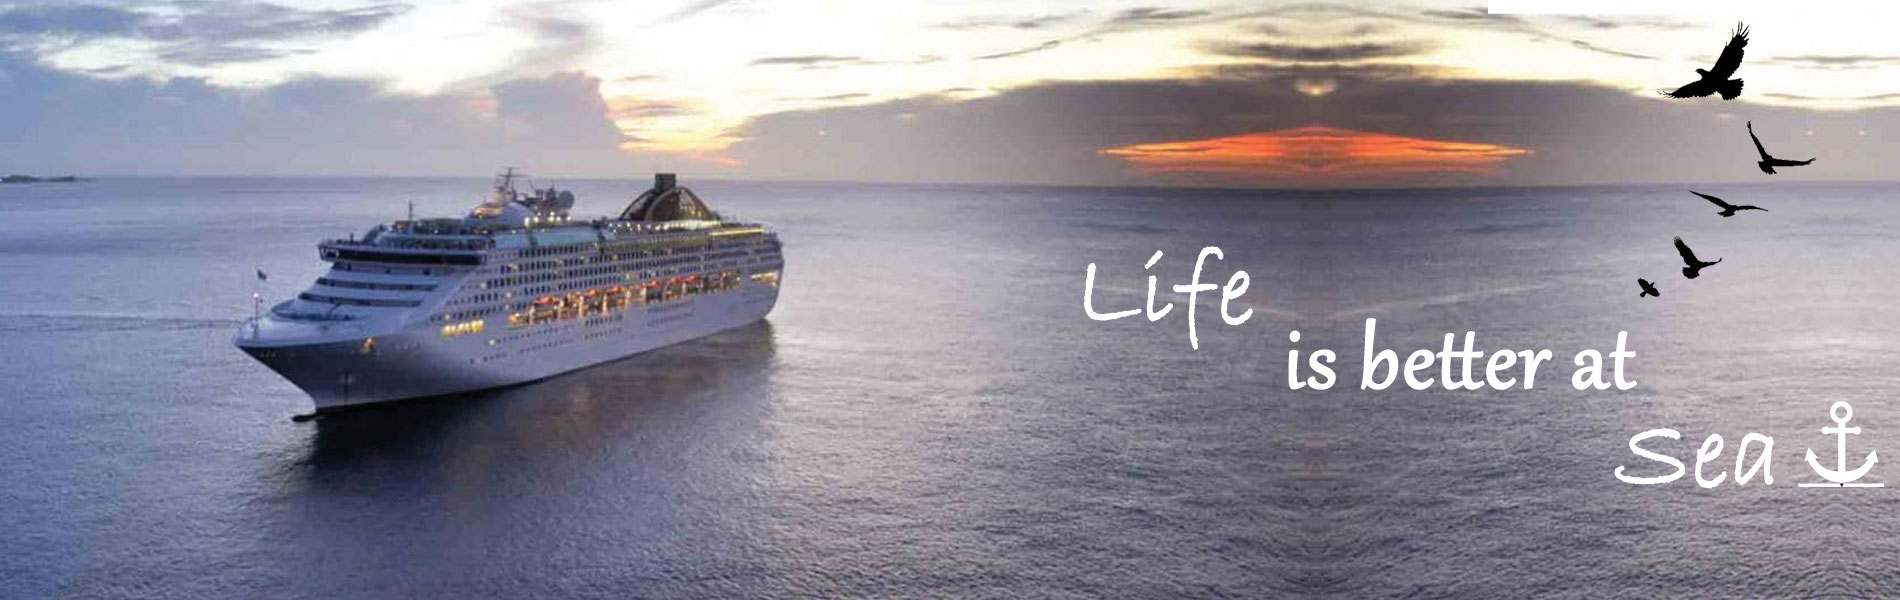 Cruise-page-banner1